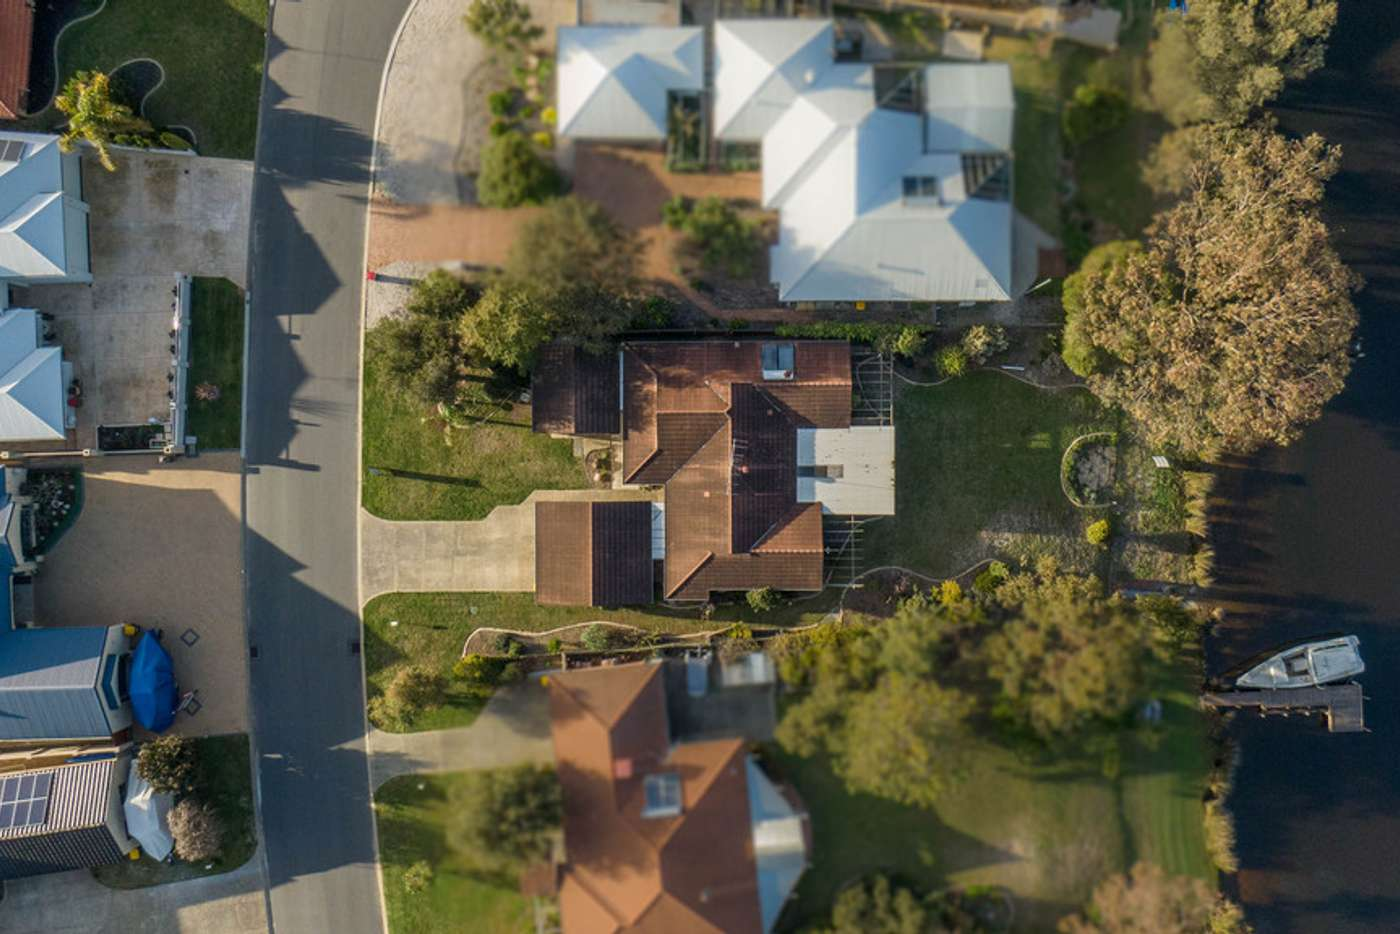 Main view of Homely house listing, 8 Wills Way, South Yunderup WA 6208